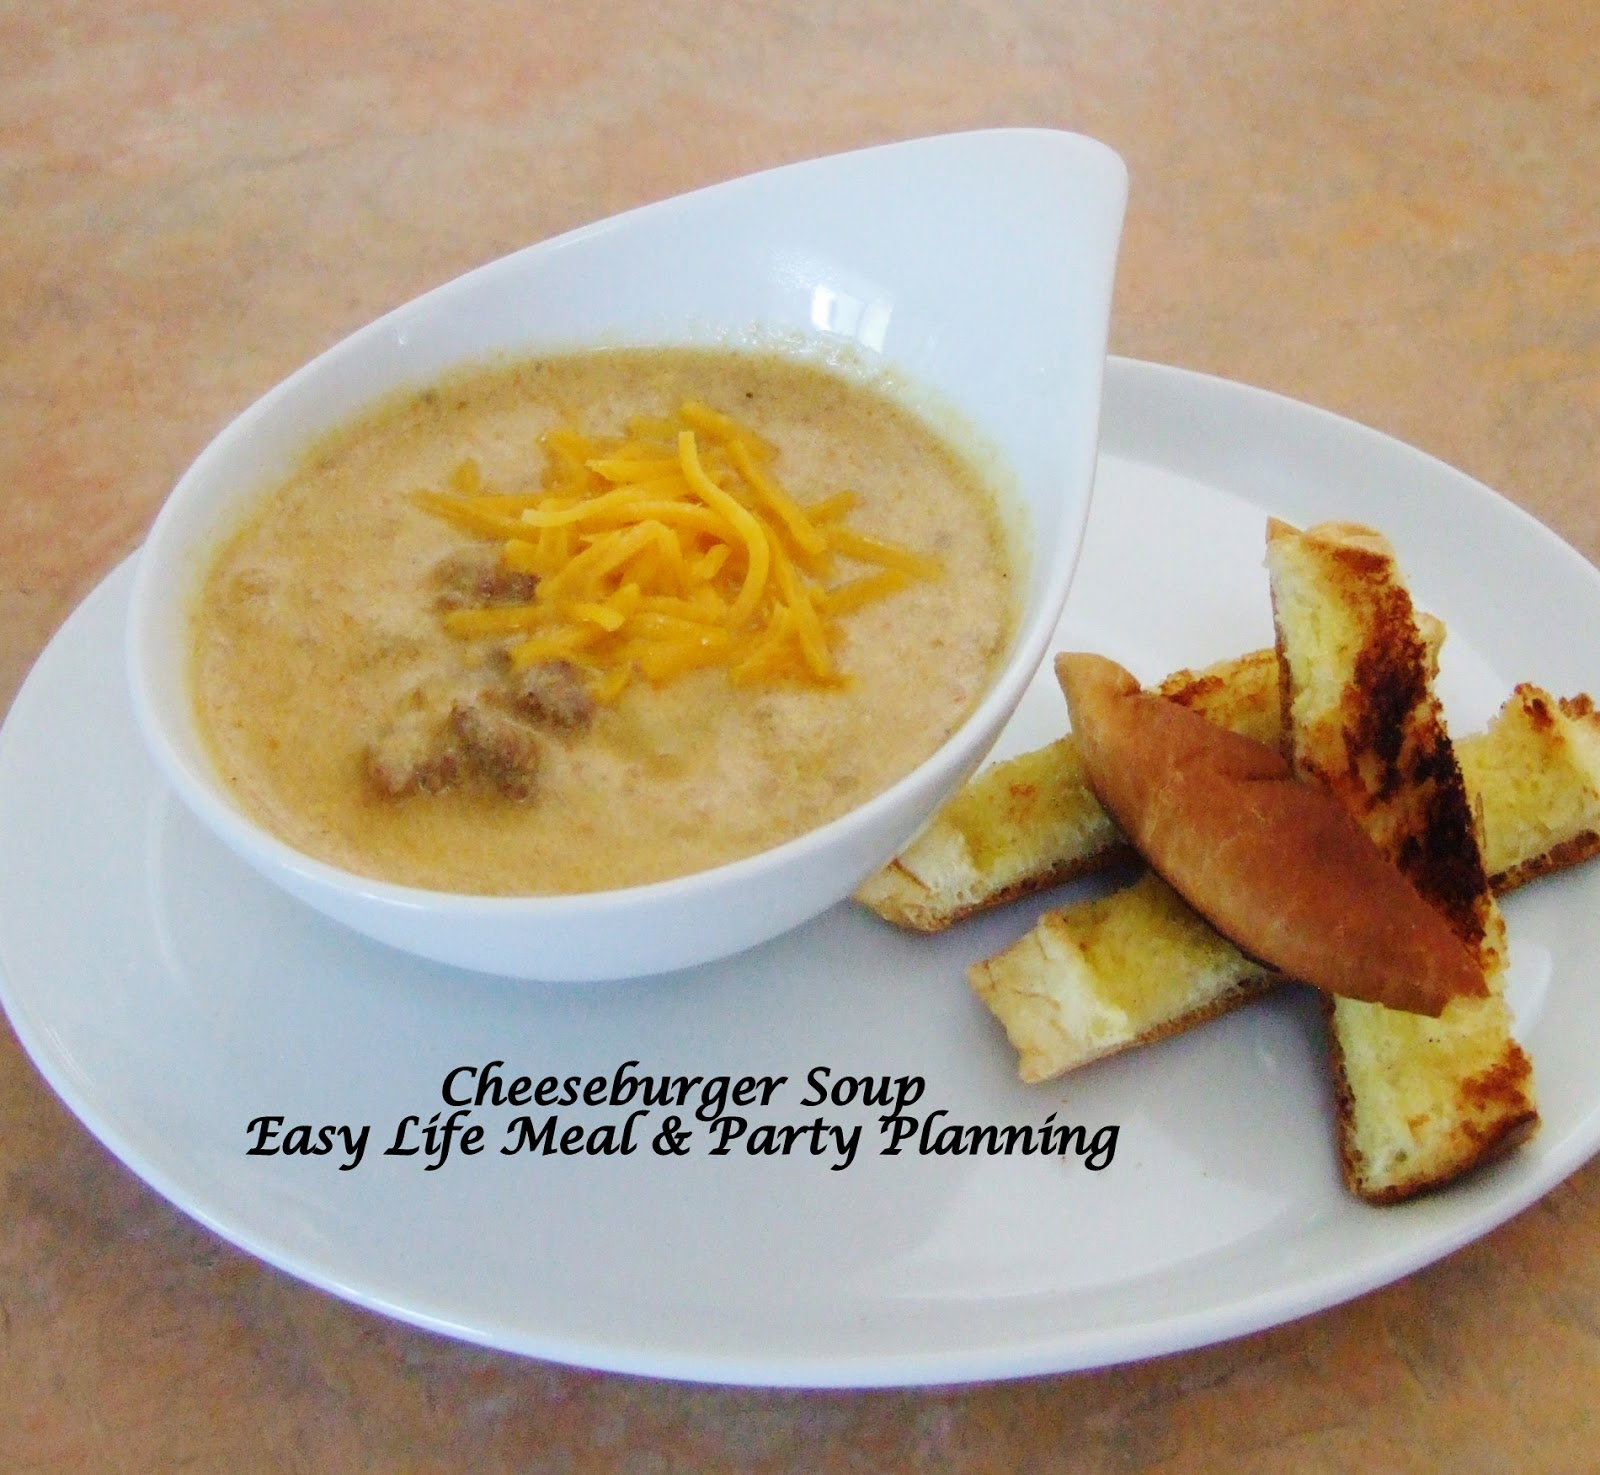 Cheeseburger Soup by Easy Life Meal & Party Planning